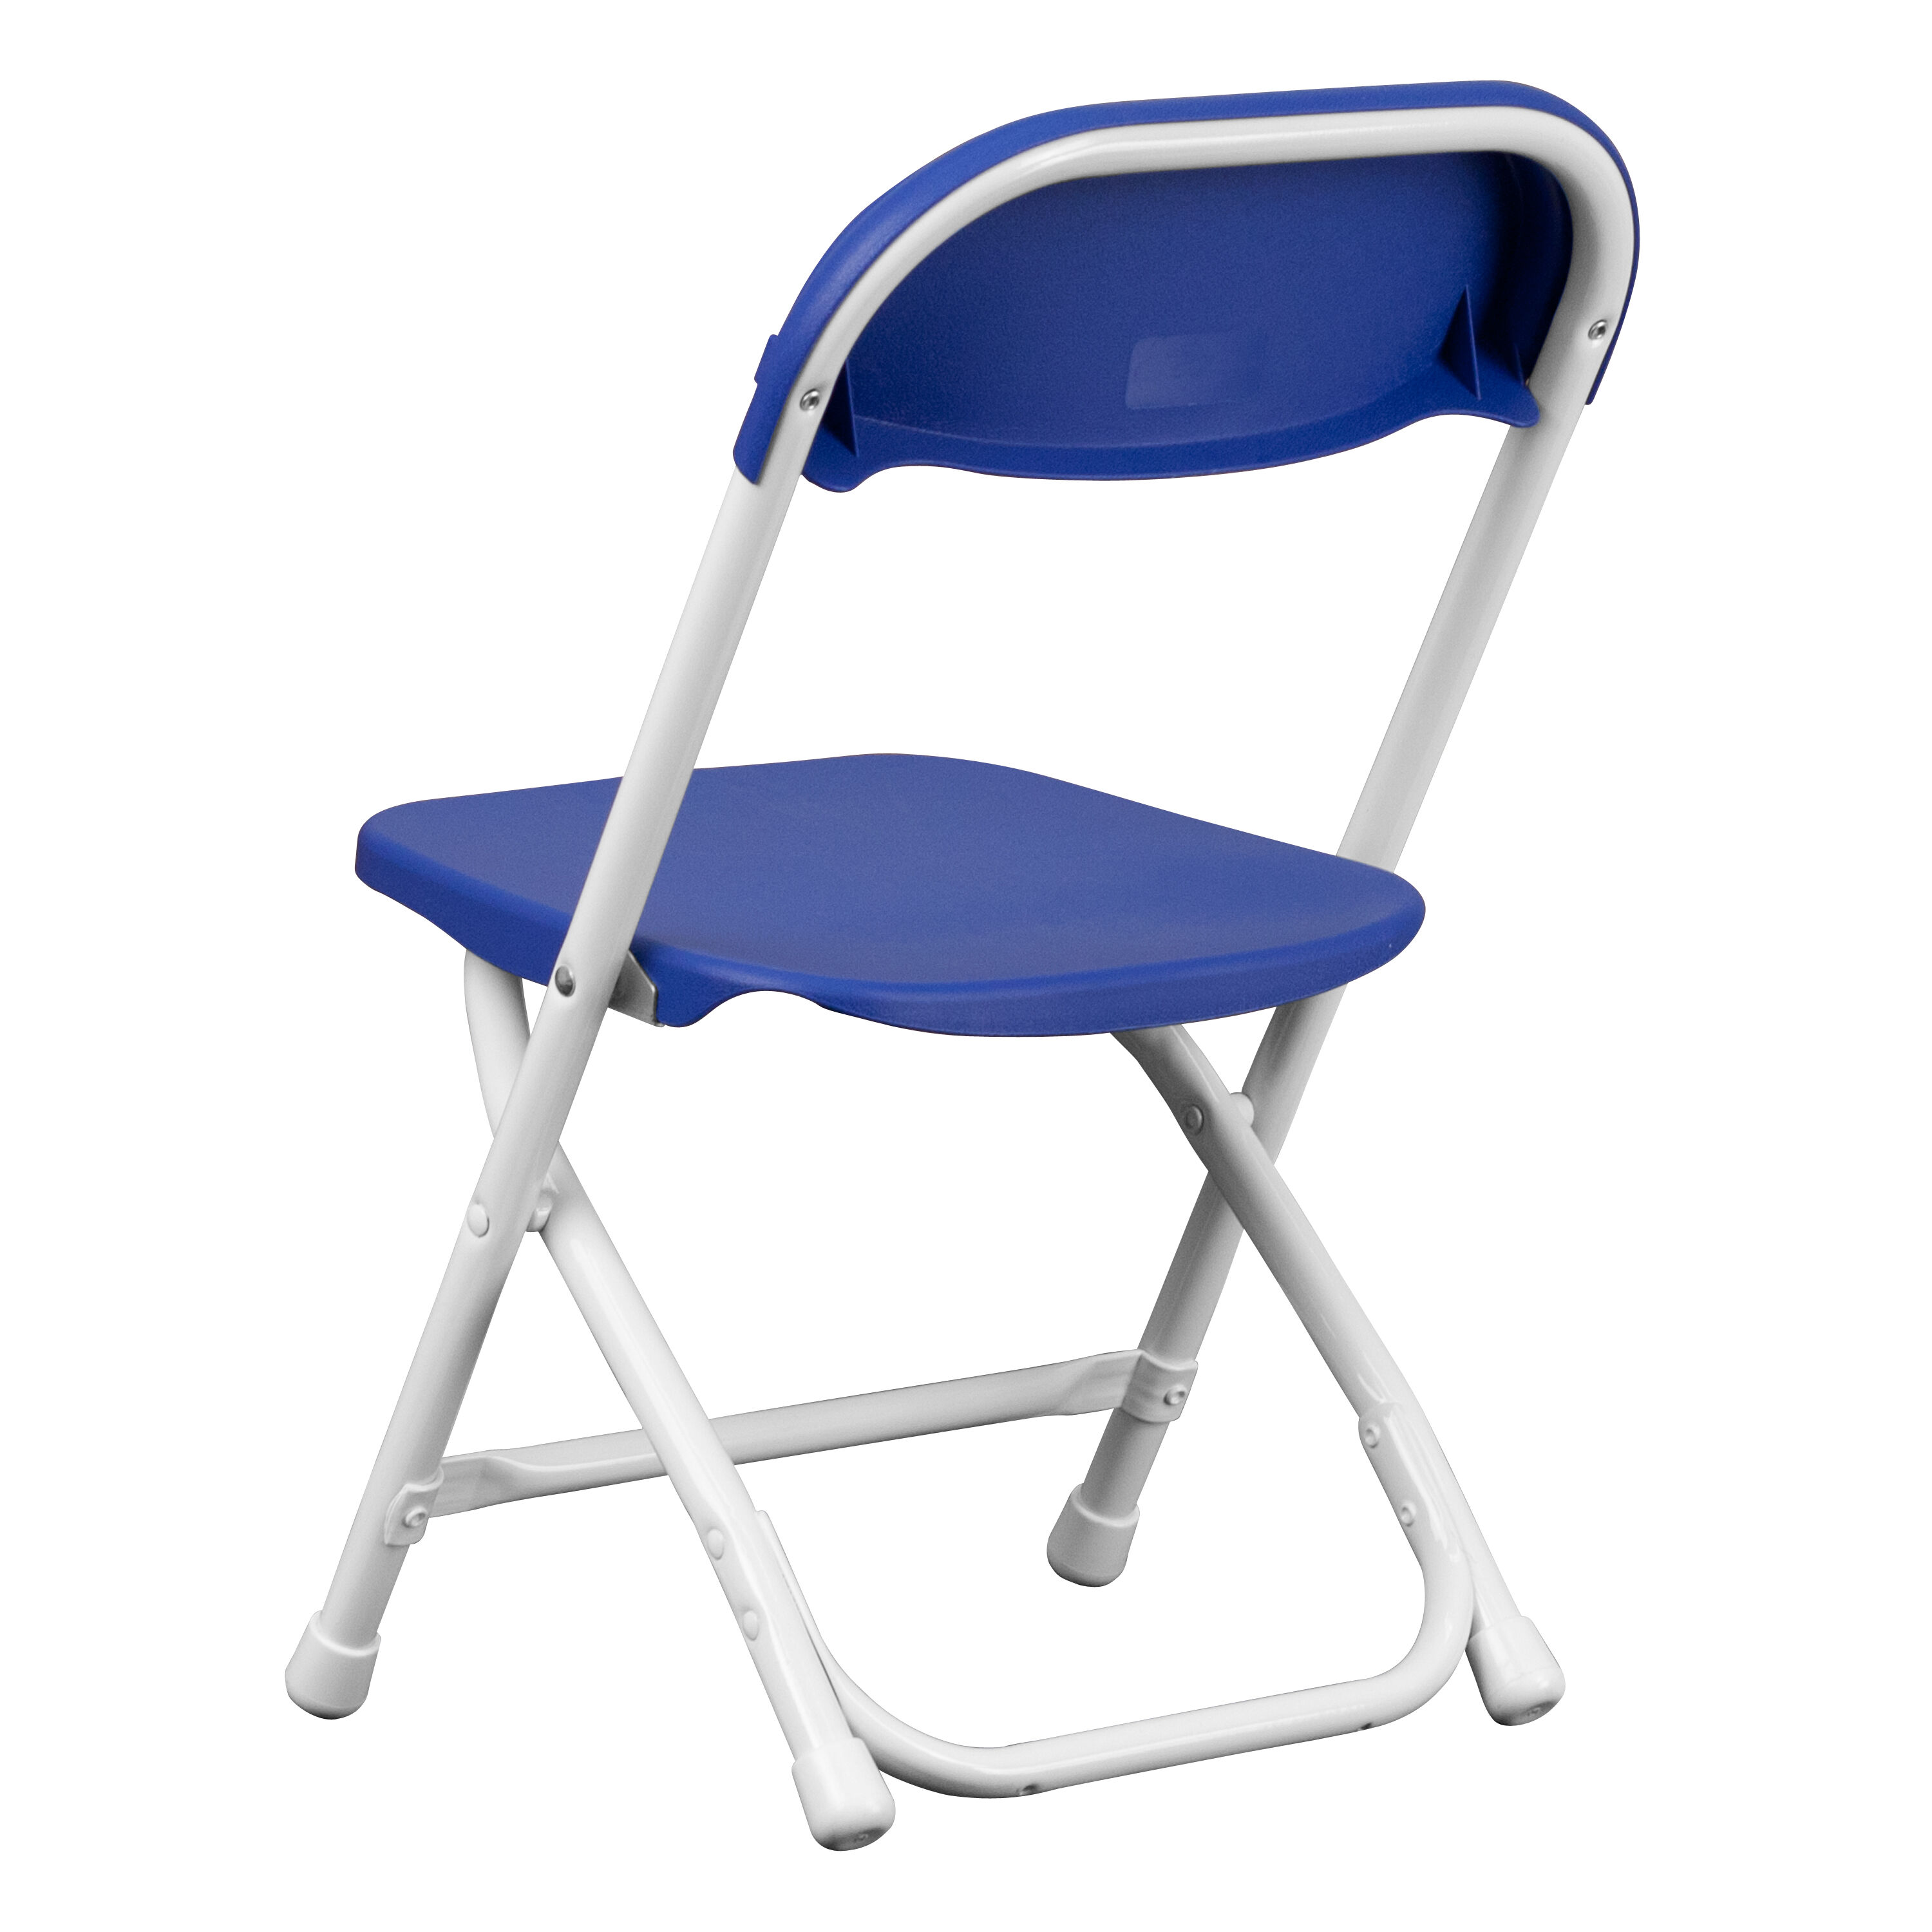 Etonnant Our Kids Blue Plastic Folding Chair Is On Sale Now.